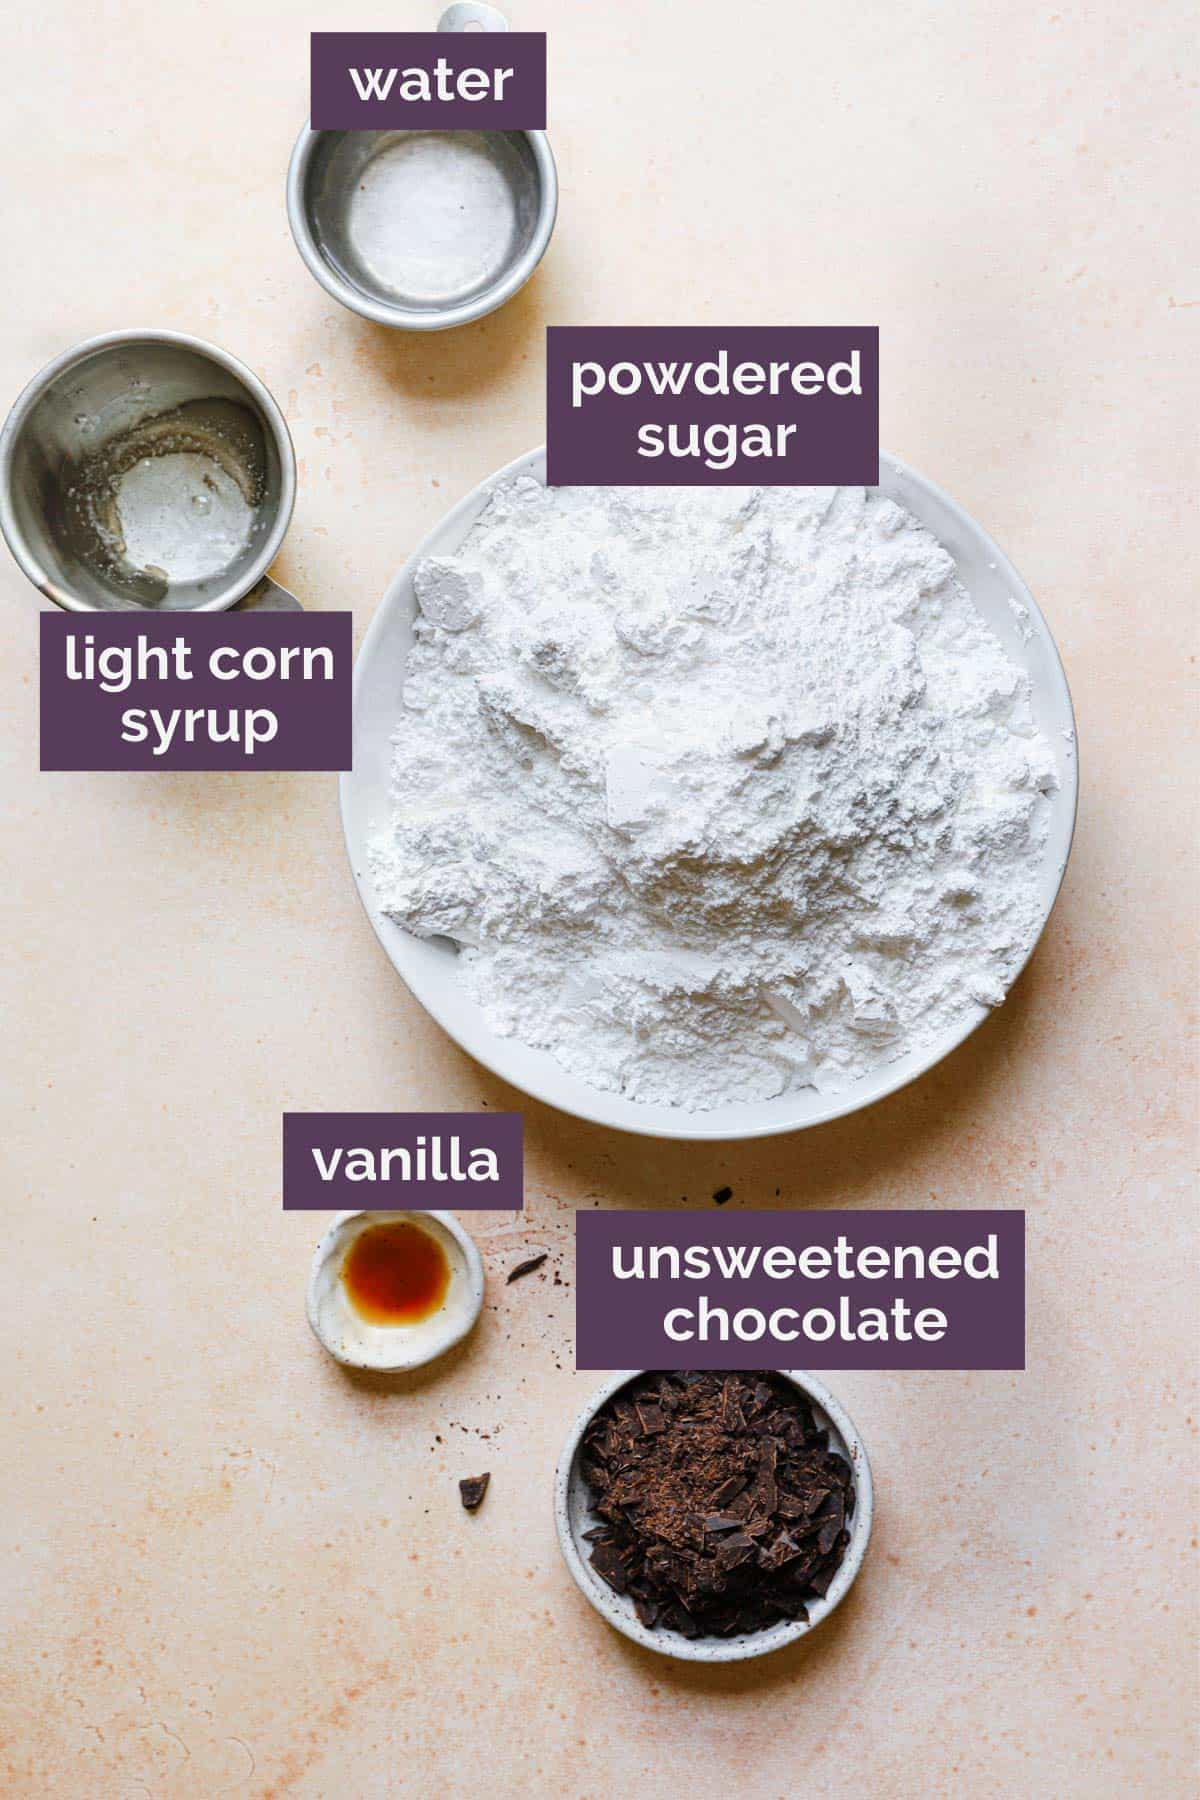 Ingredients for black and white cookie icing with purple labels saying what each ingredient is.